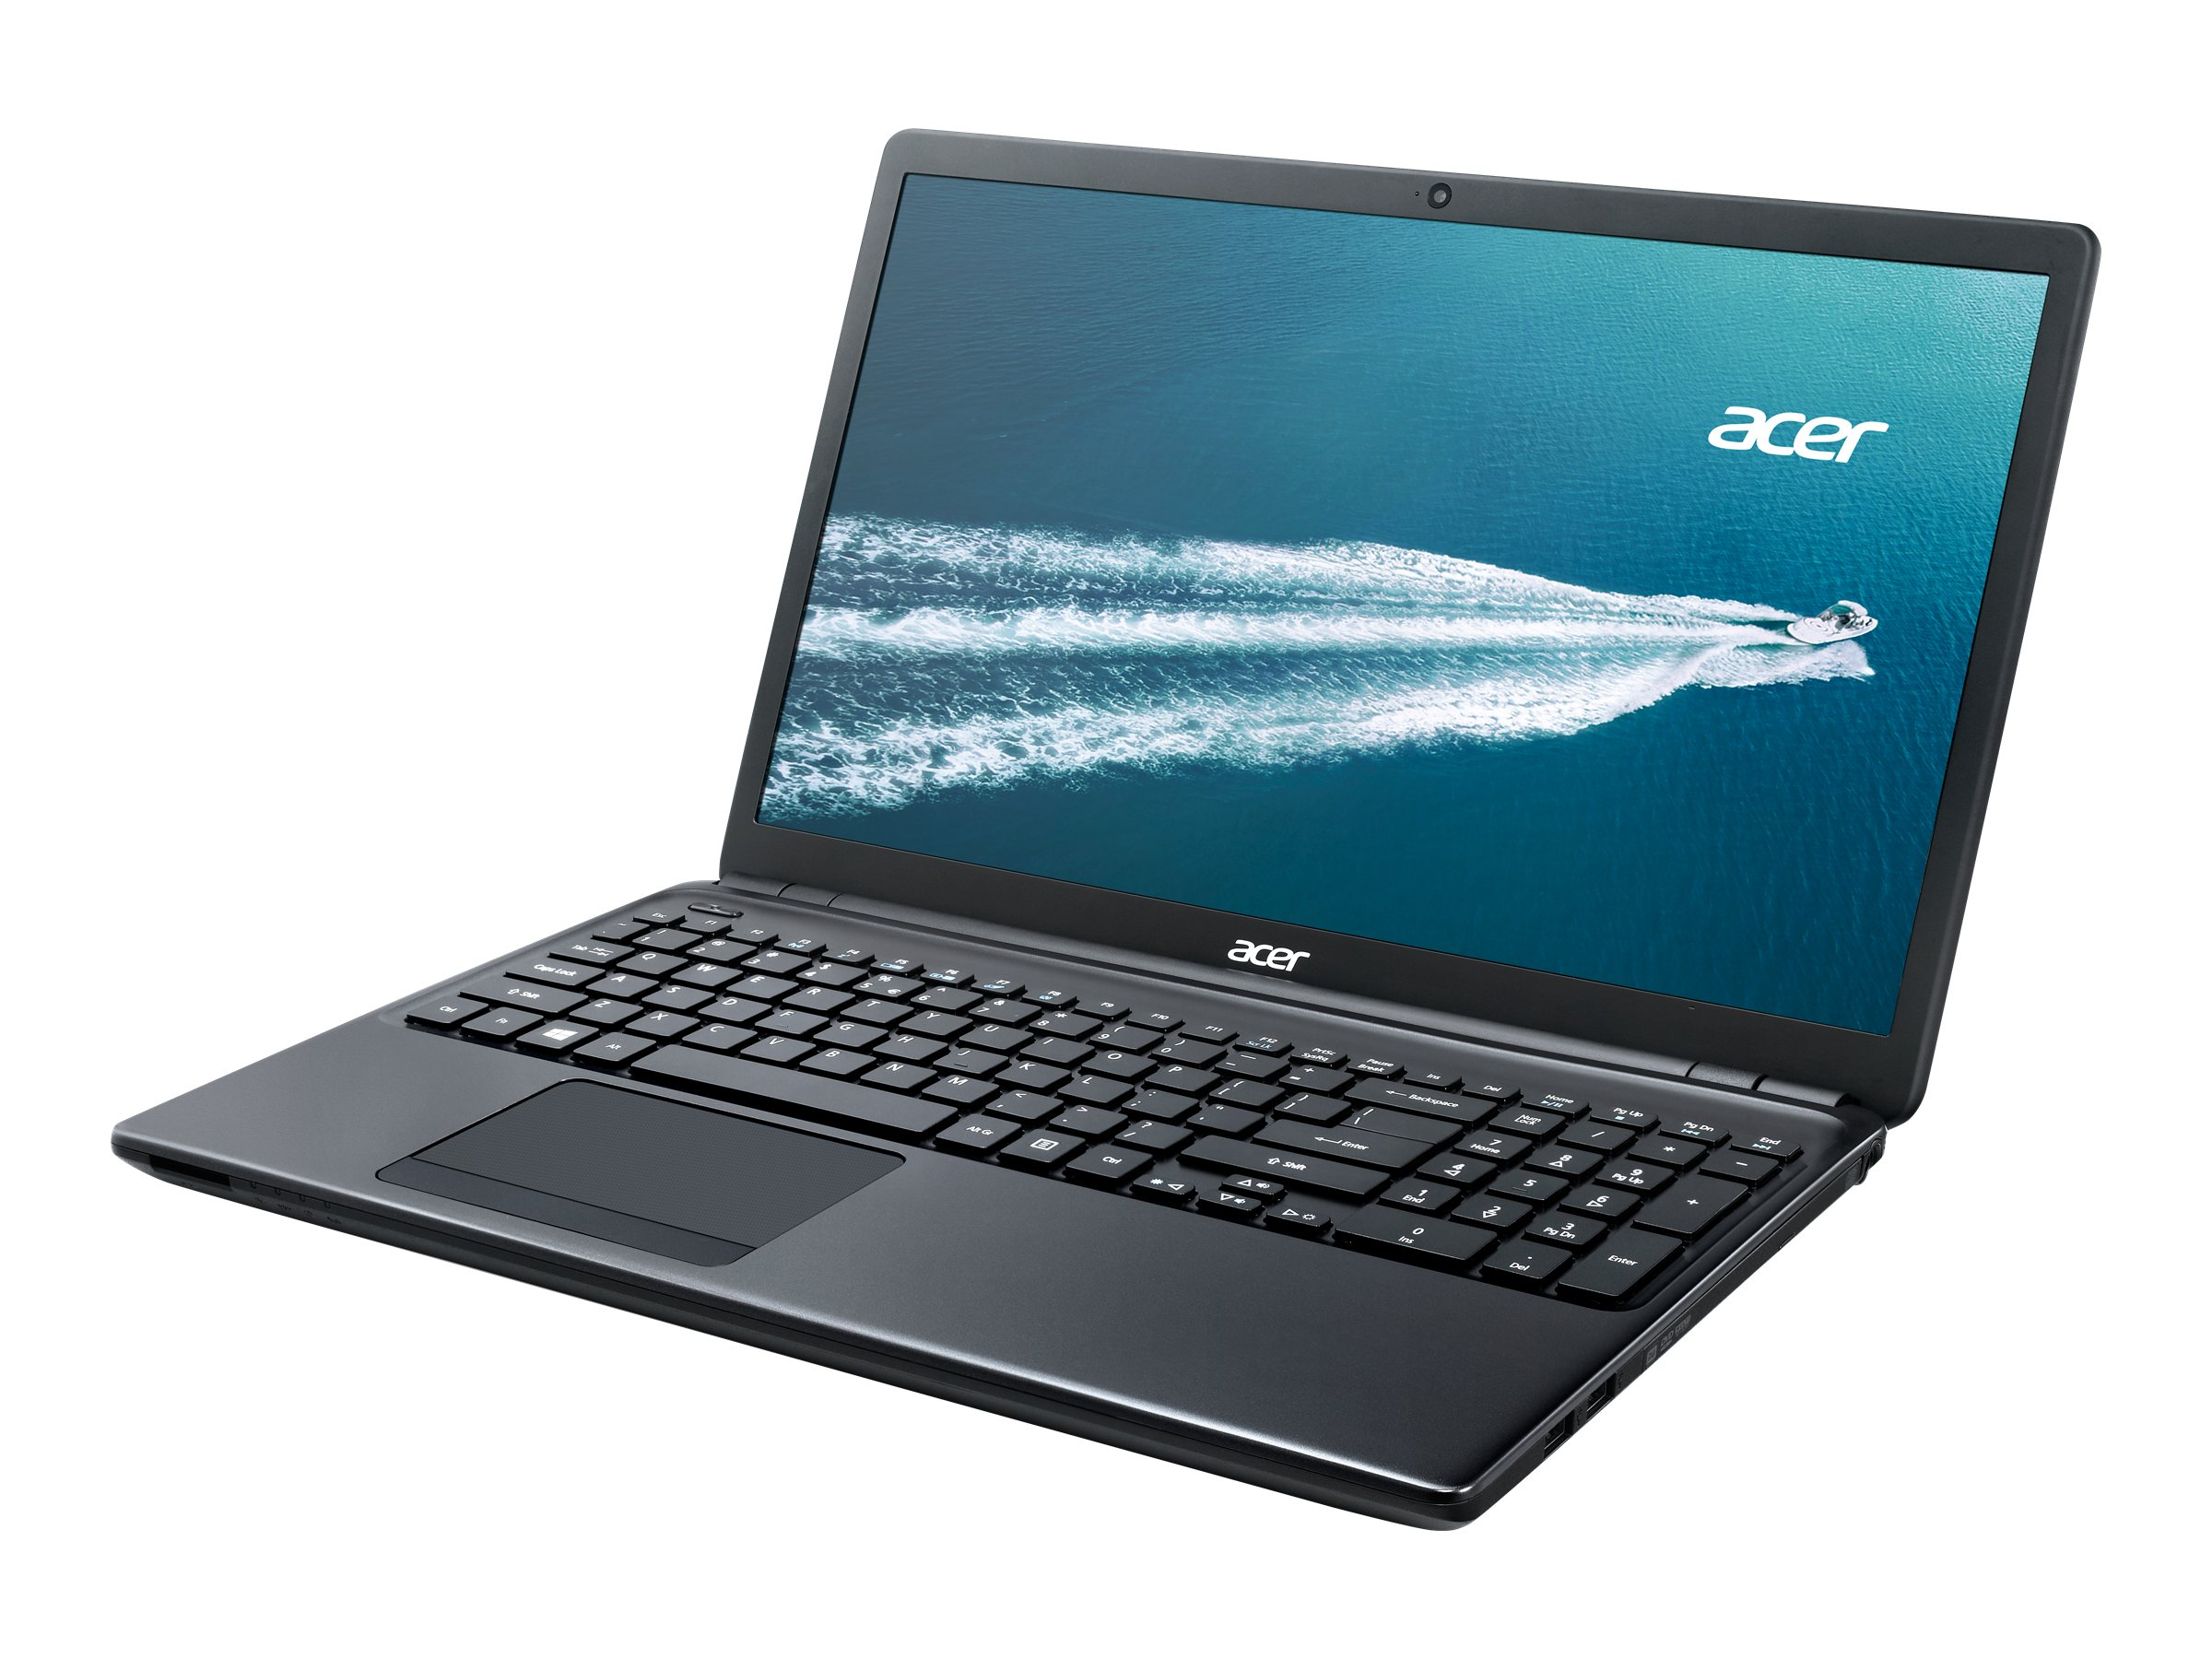 Acer TravelMate P255-MP-6686 1.7GHz Core i3 15.6in display, NX.V98AA.002